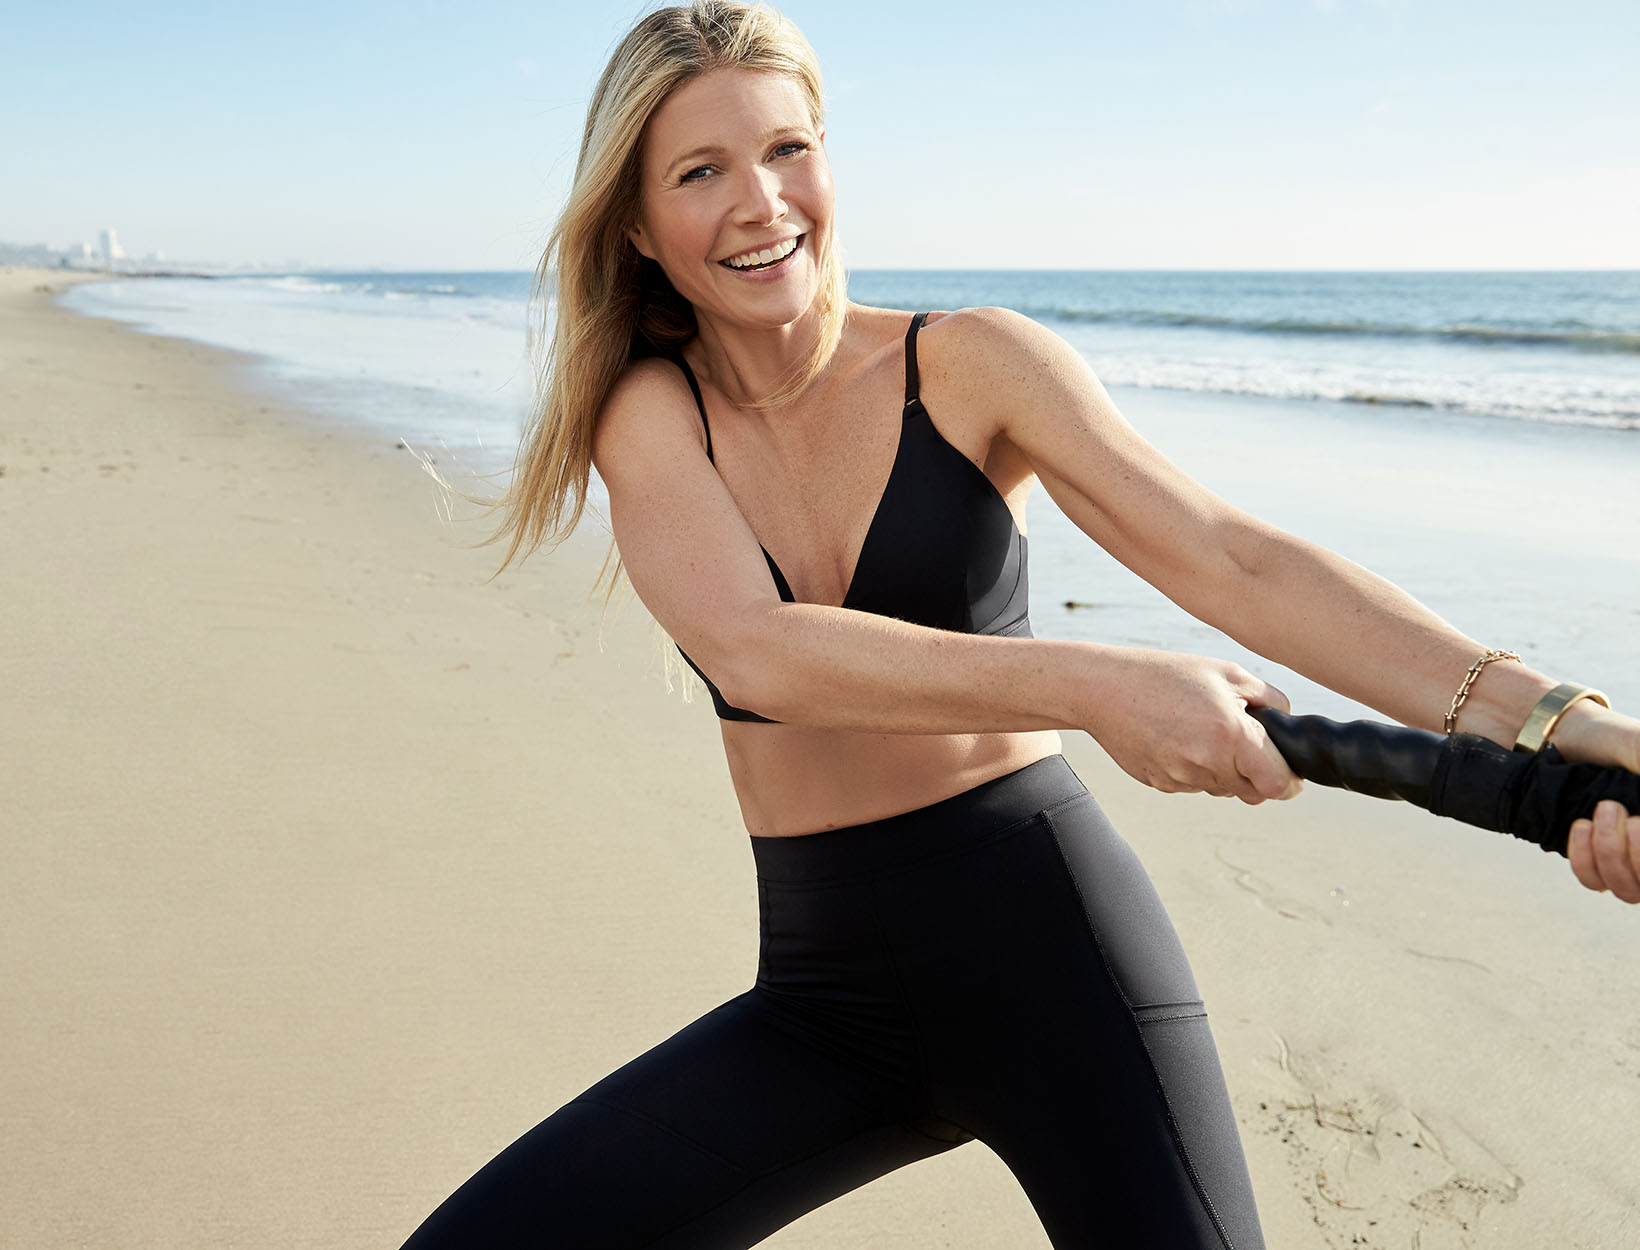 Gwenyth Paltrow in G. Sport